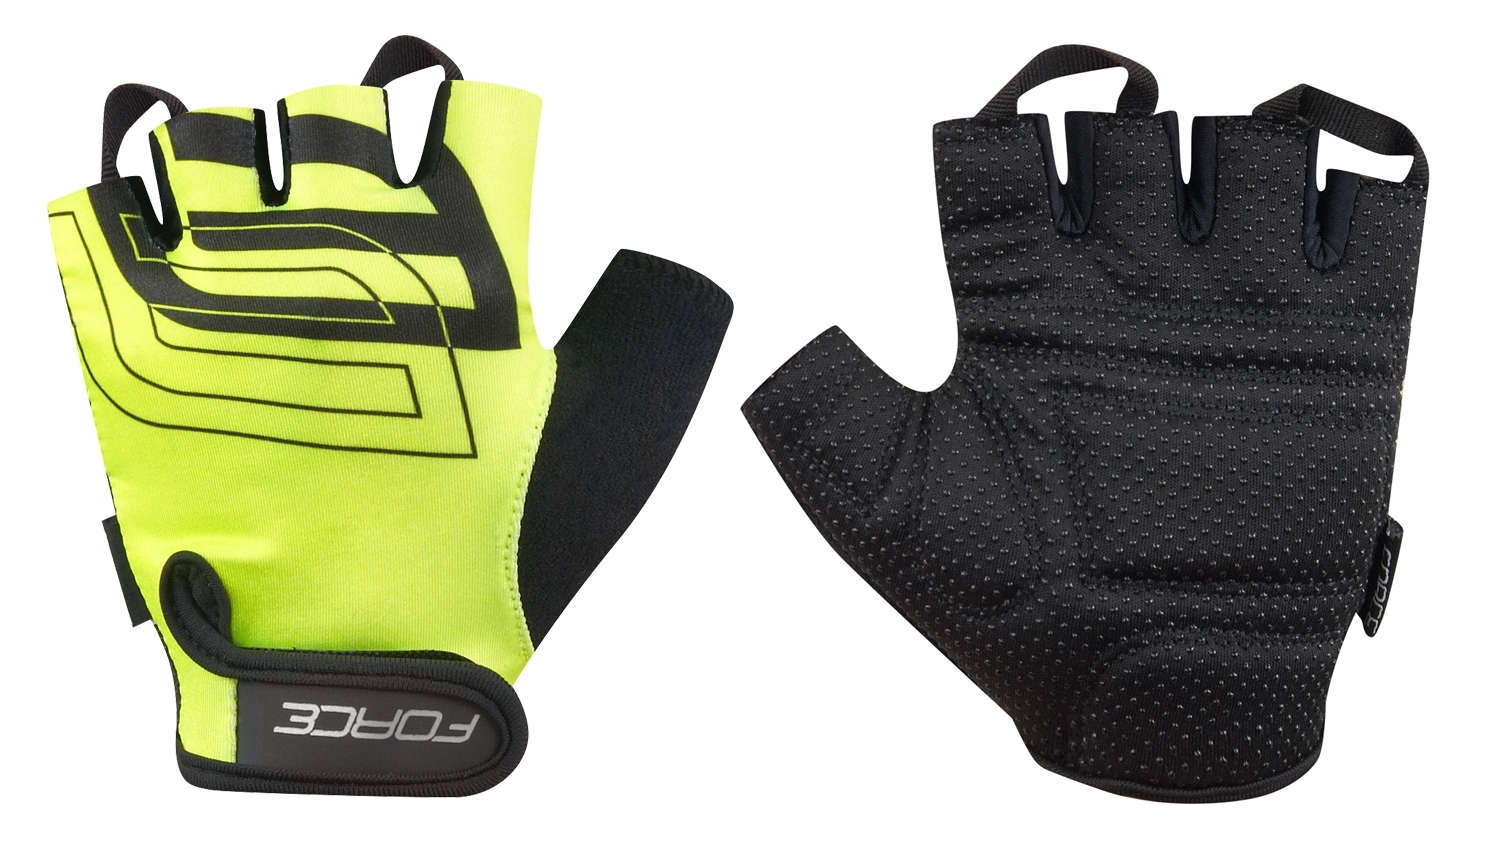 Rukavice FORCE SPORT, fluo L